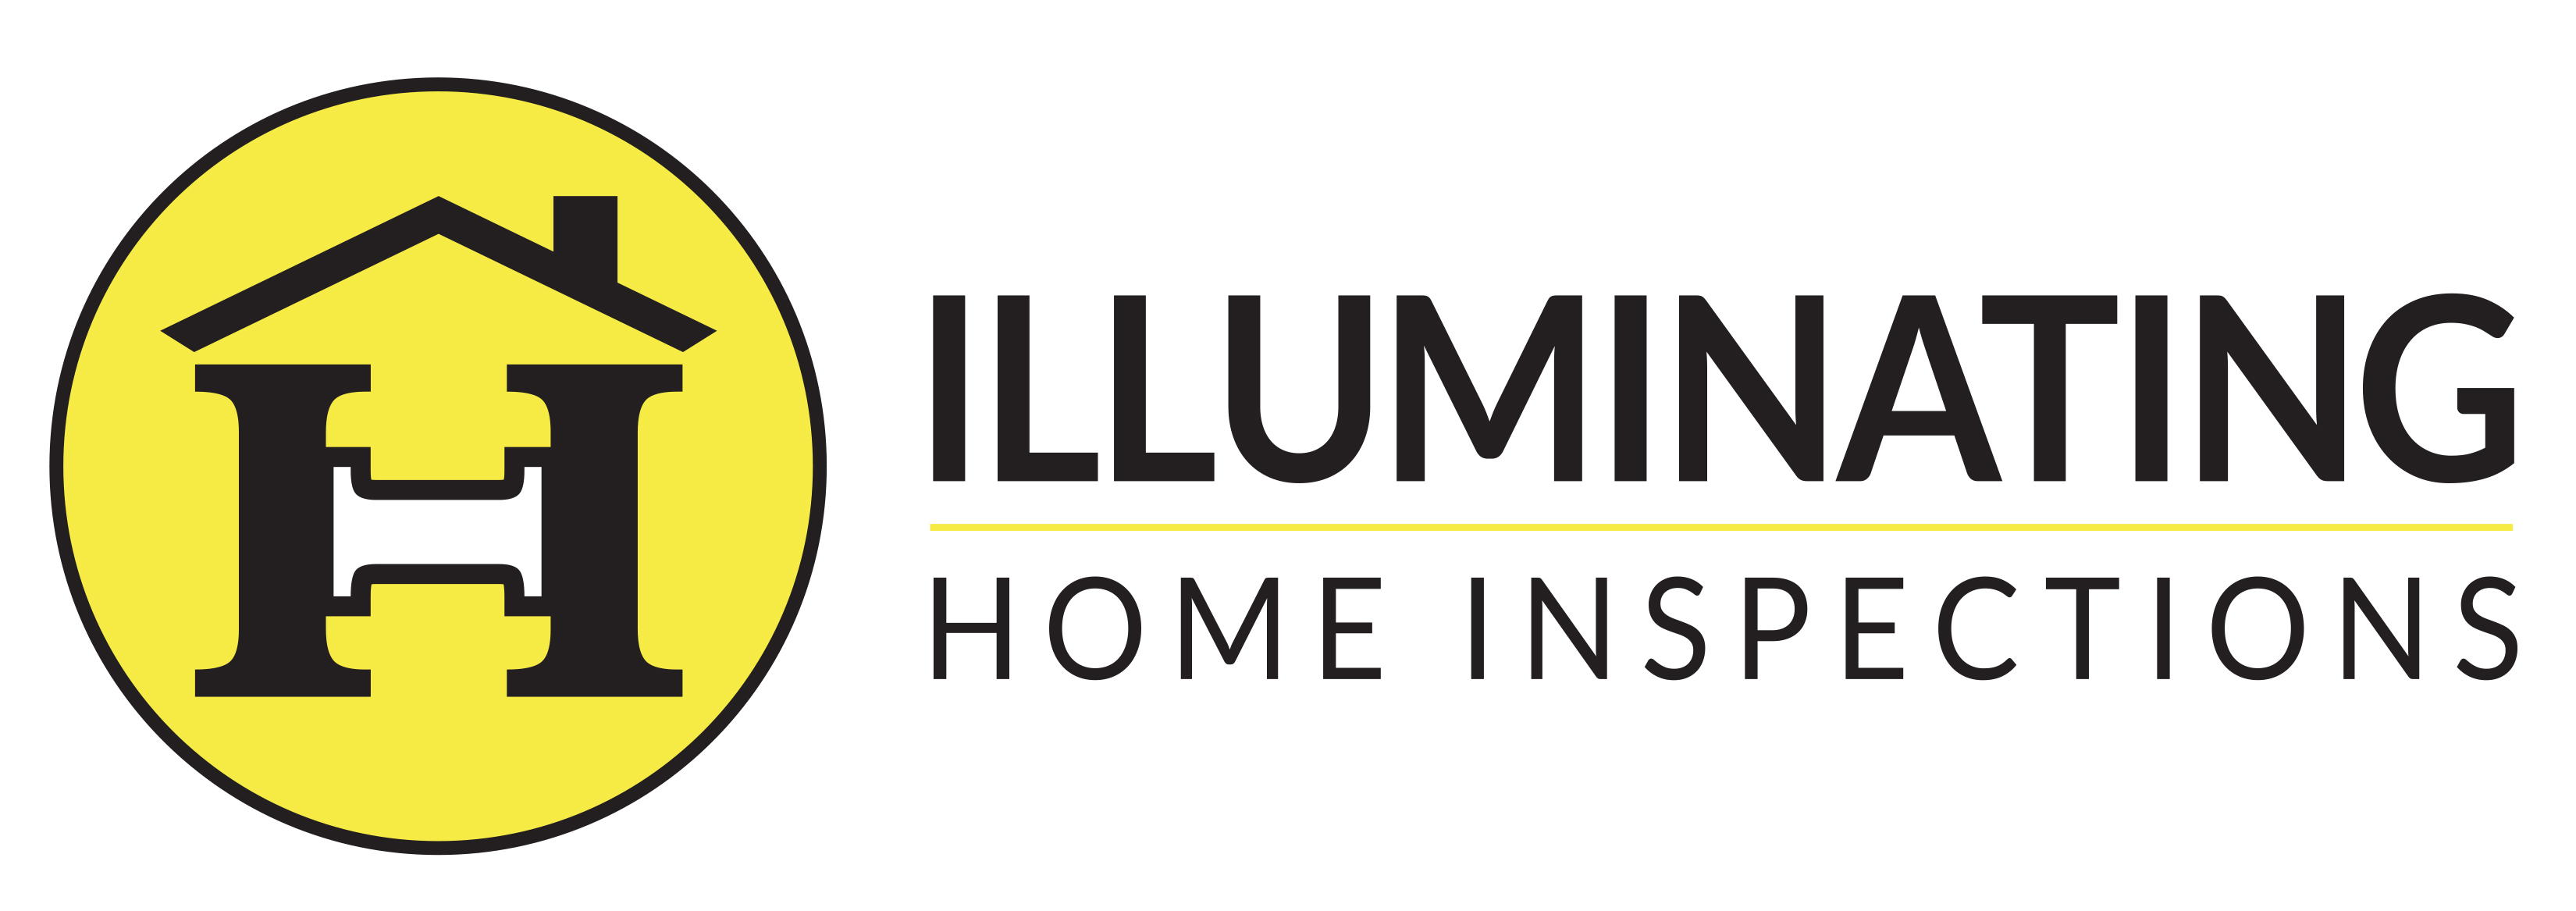 Illuminating-Home-Inspections